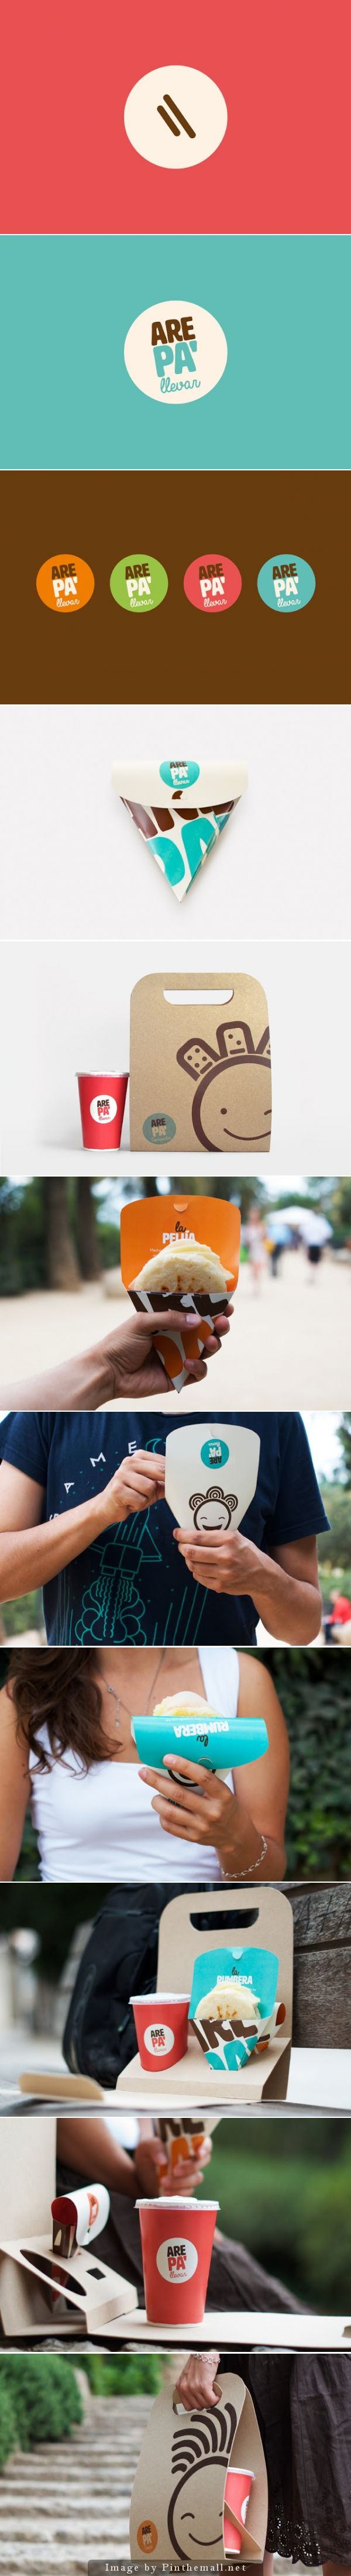 Arepa' (Student Project), Designers: Diego Frayle & Duriana Rodríguez - http://www.packagingoftheworld.com/2014/10/arepa-student-project.html